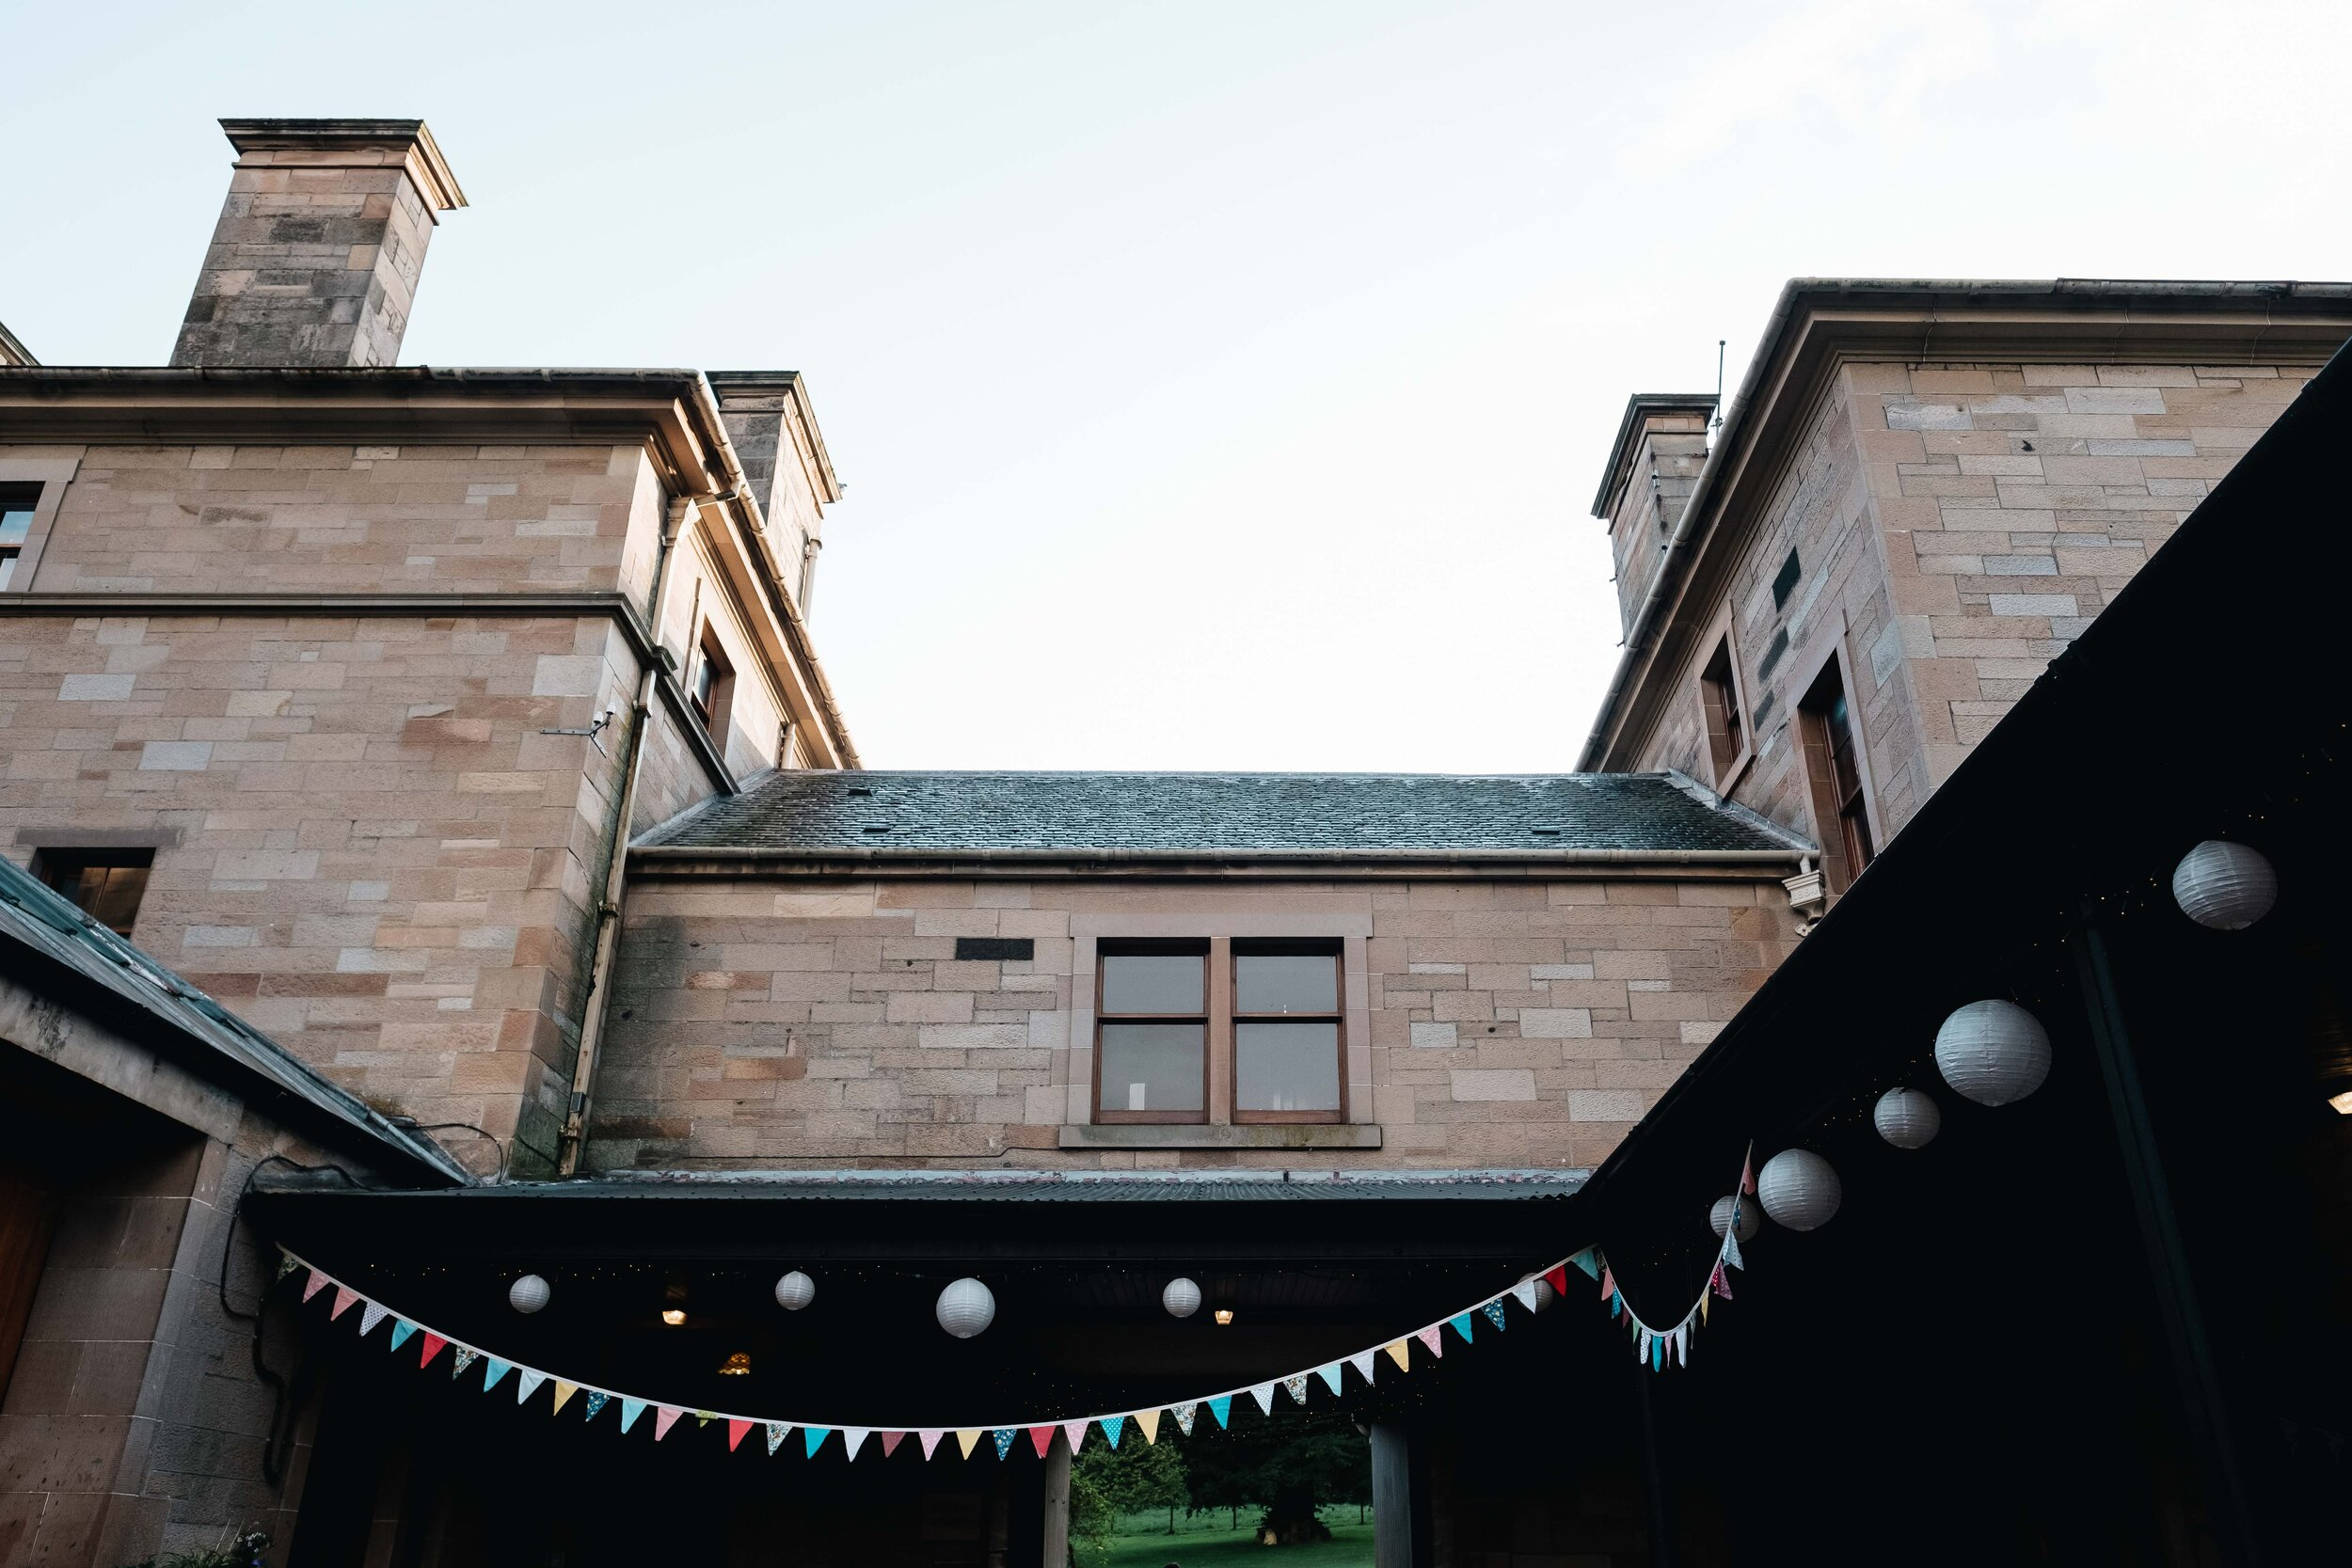 The court yard of Cambo House with bunting